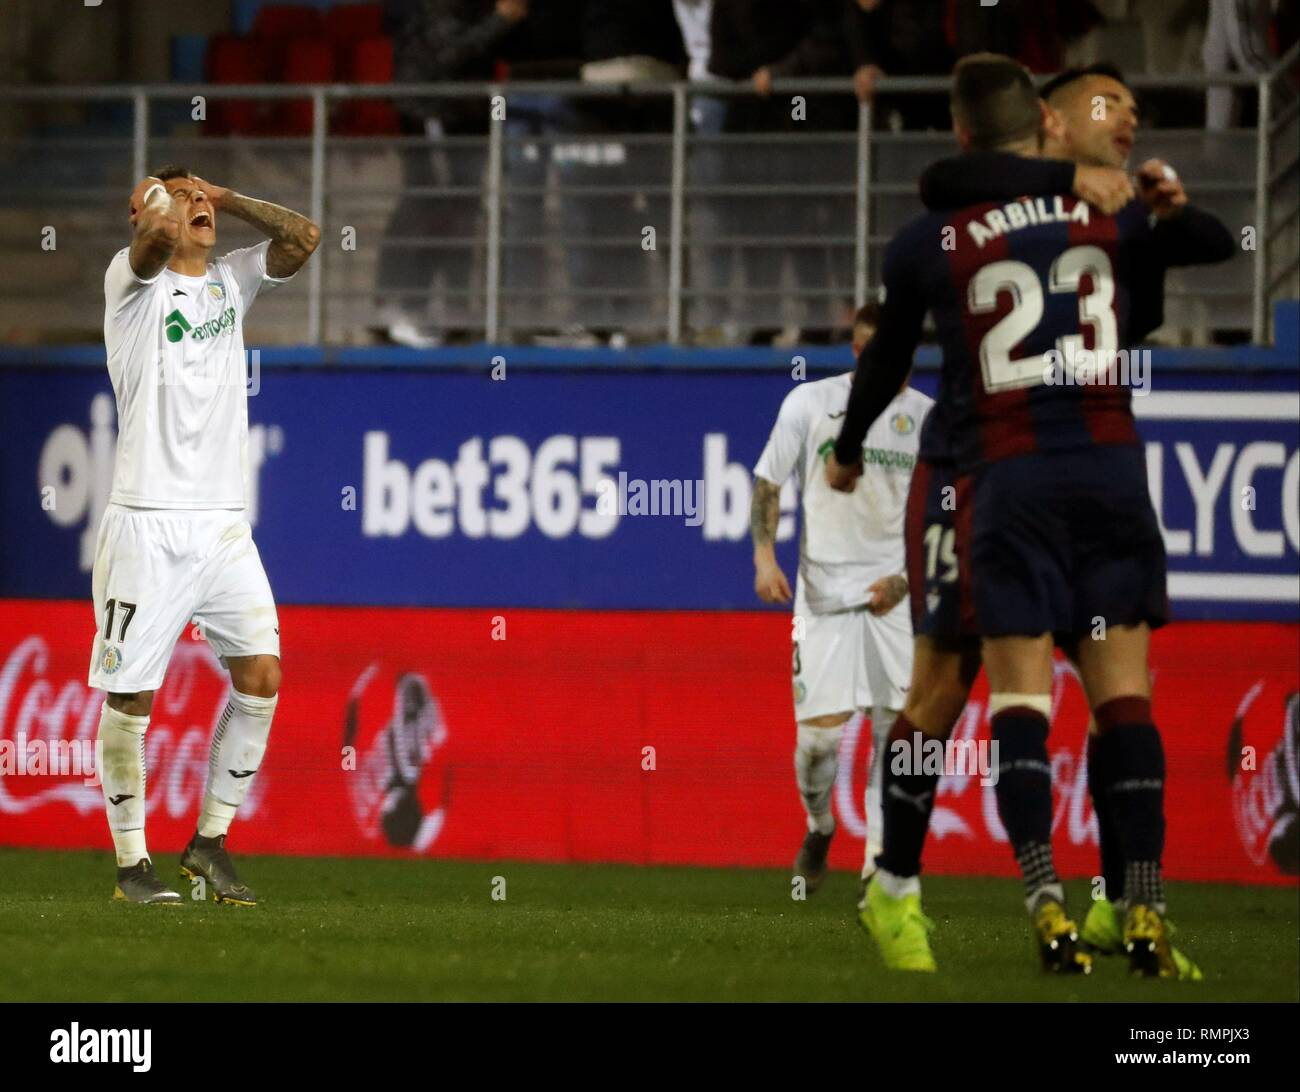 Eibar, Spain. 15th Feb, 2019. Getafe's French Mathias Olivera (L) jubilates a goal during the Spanish LaLiga match between SD Eibar and Getafe at Ipurua stadium in Eibar, Basque Country, Spain, 15 February 2019. Credit: Javier Etxezarreta/EFE/Alamy Live News - Stock Image